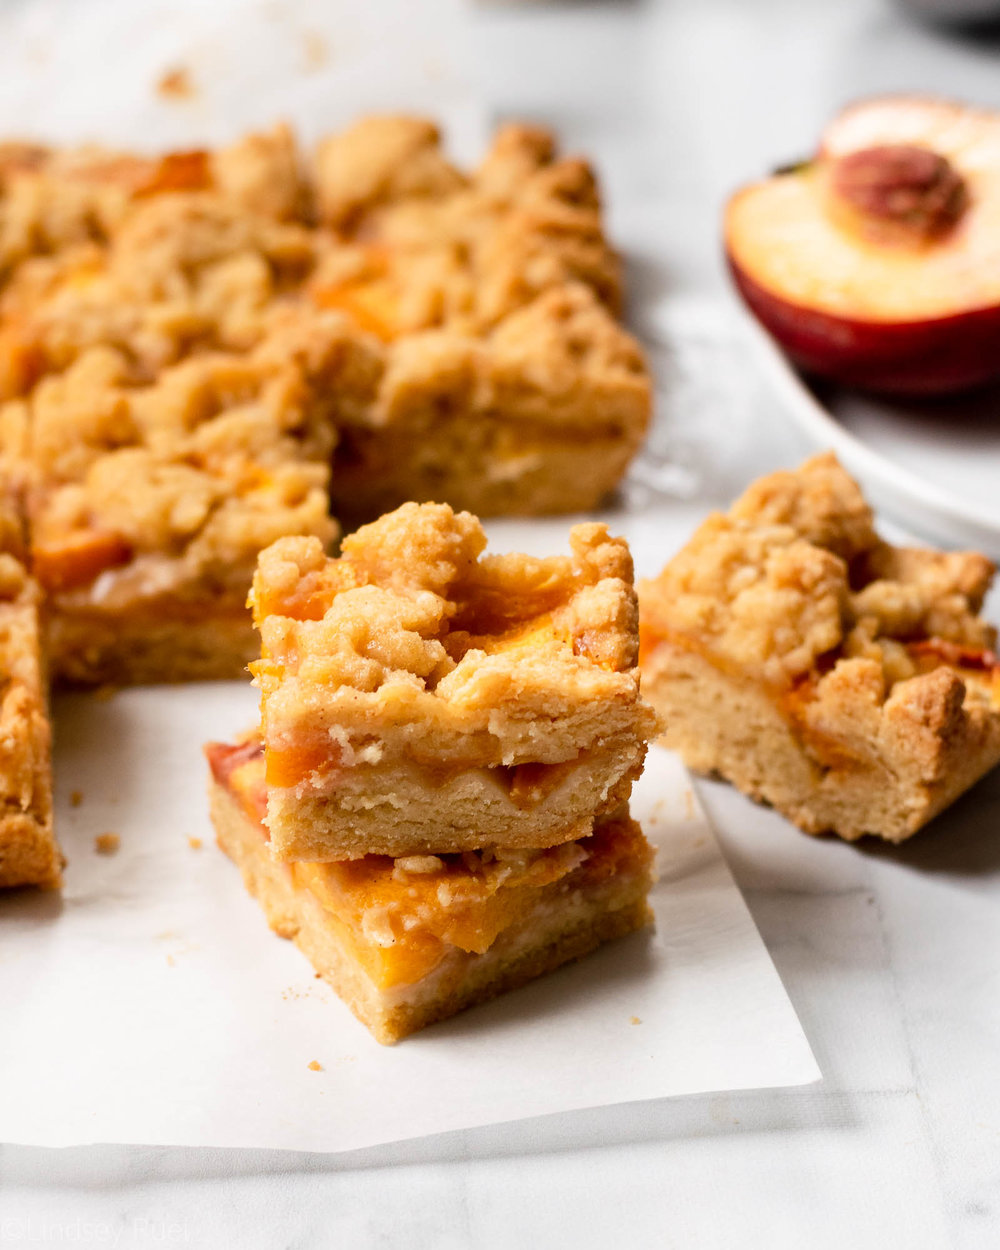 Peach-Cobbler-Bars-7.jpg